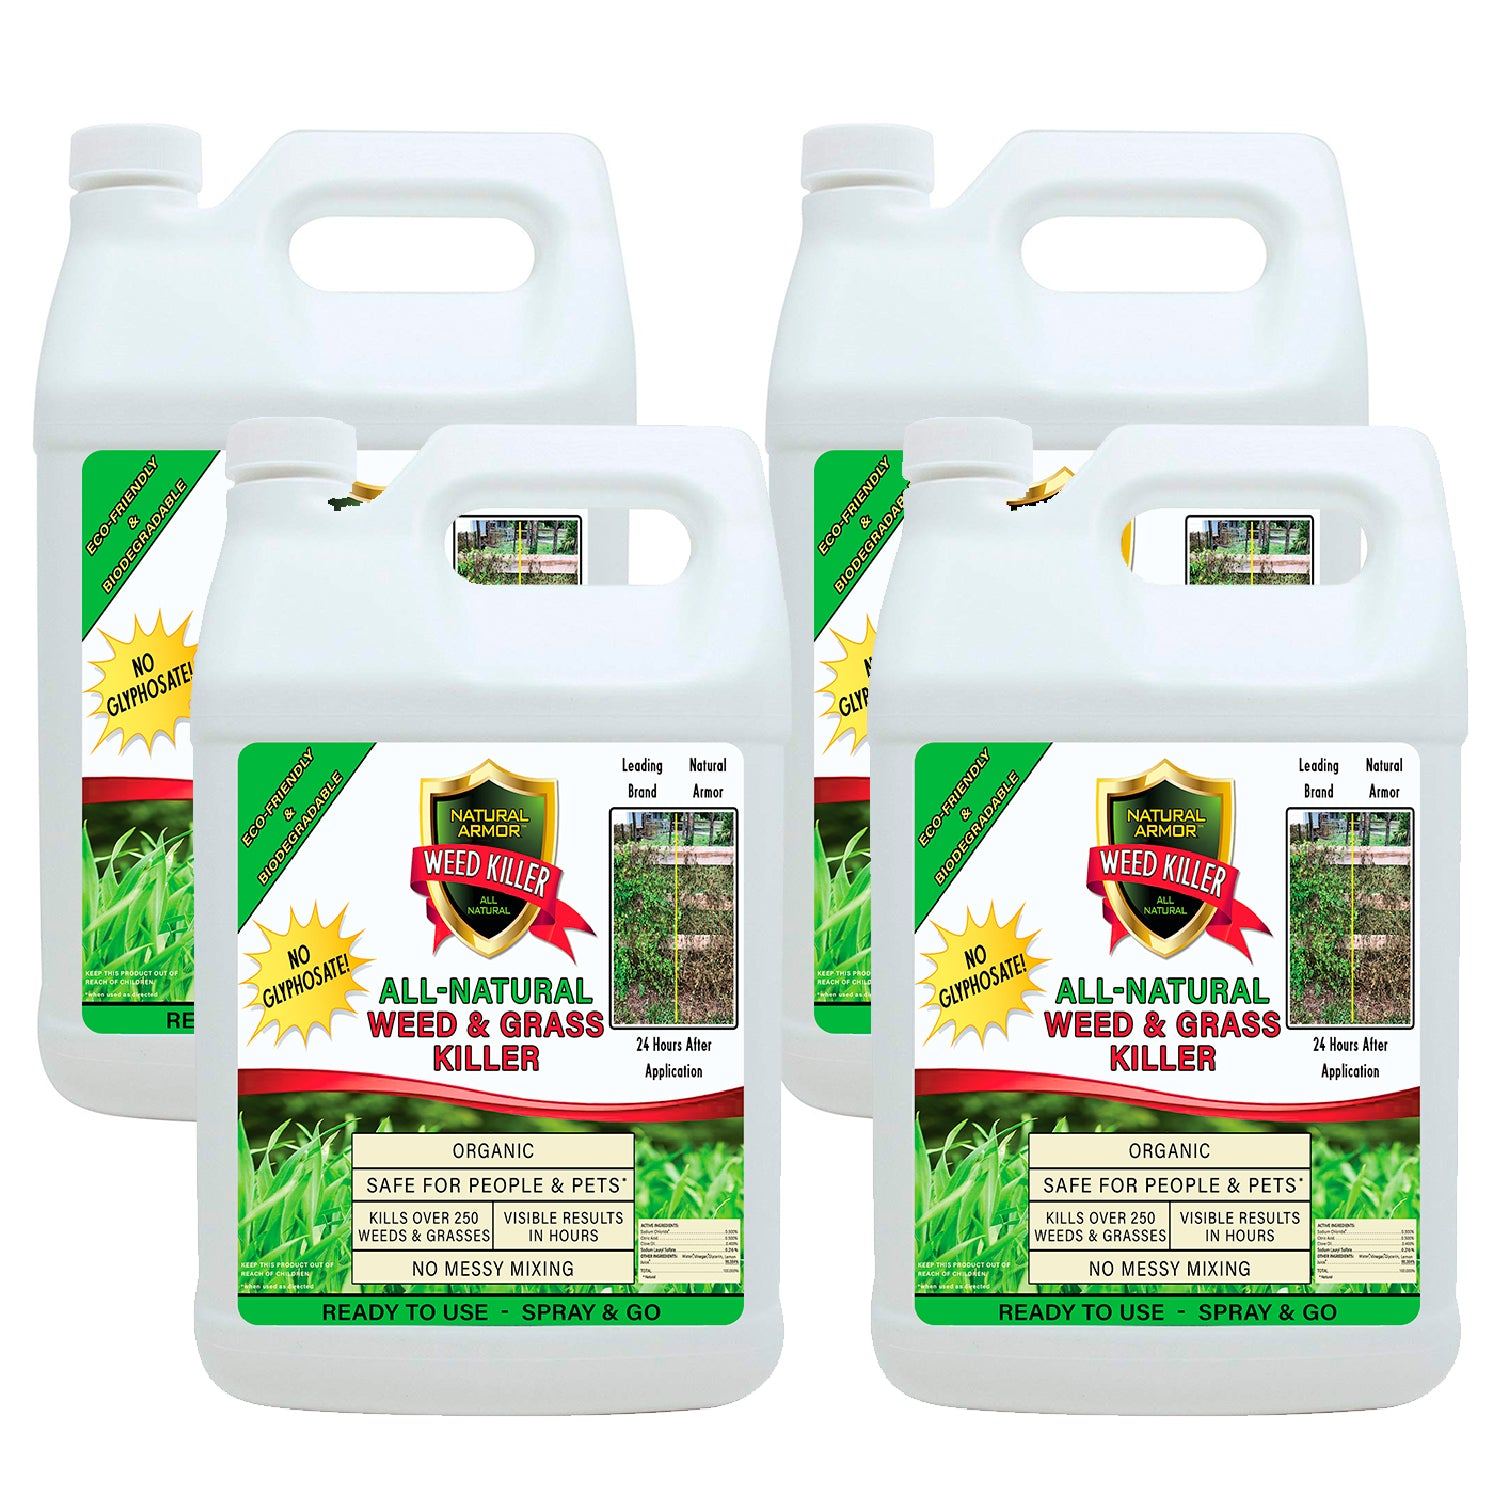 Natural Armor All-Natural Weed Killer - CASE OF 4 GALLON REFILLS